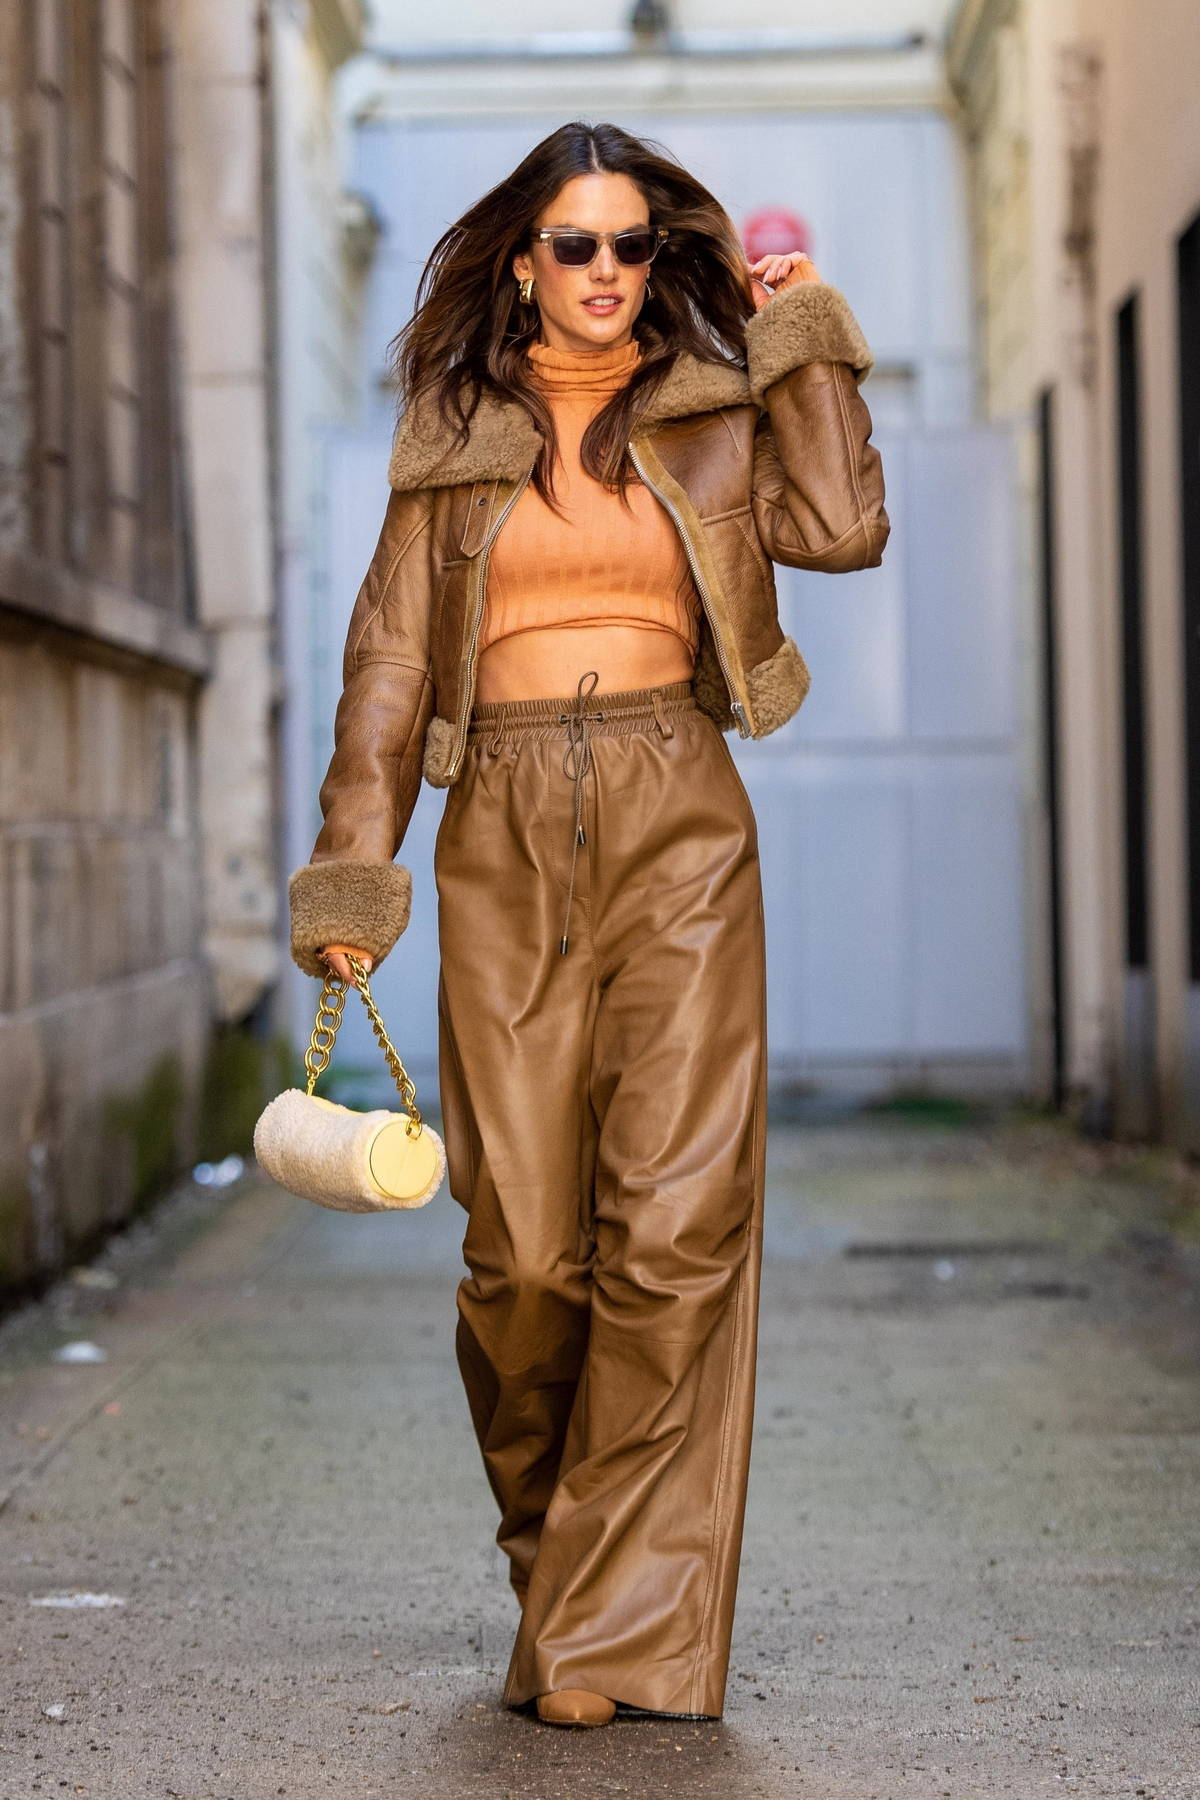 Alessandra Ambrosio looks stunning in brown leather jacket with matching pants during Paris Fashion Week in Paris, France